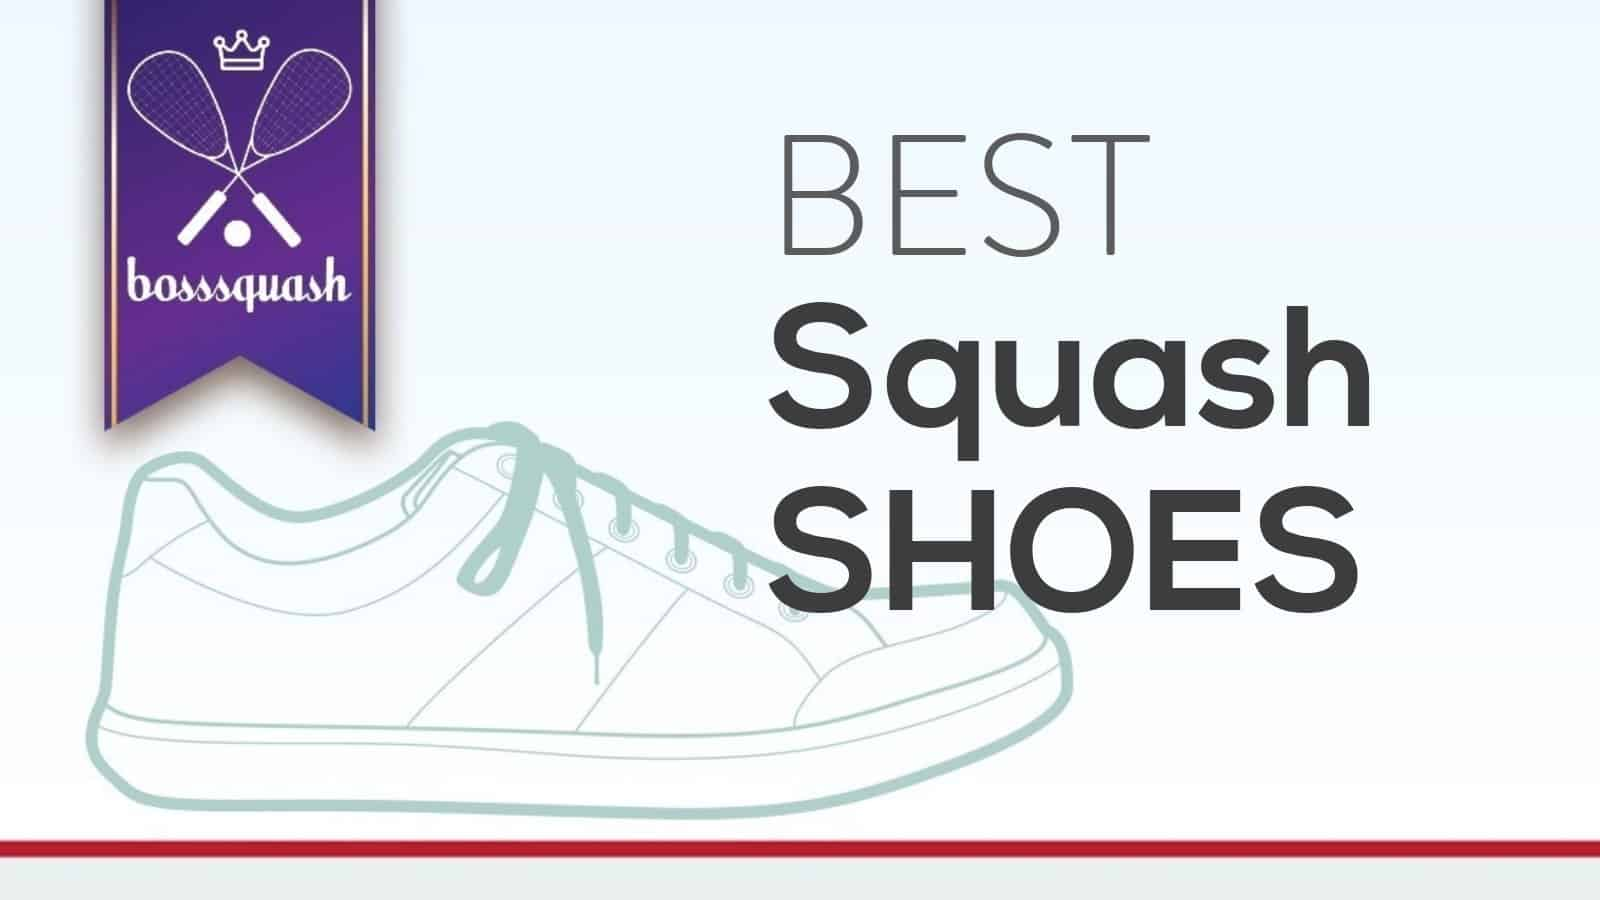 8202a5d2f6 Best Squash Shoes 2019 - 7 Best Shoes for Playing Squash